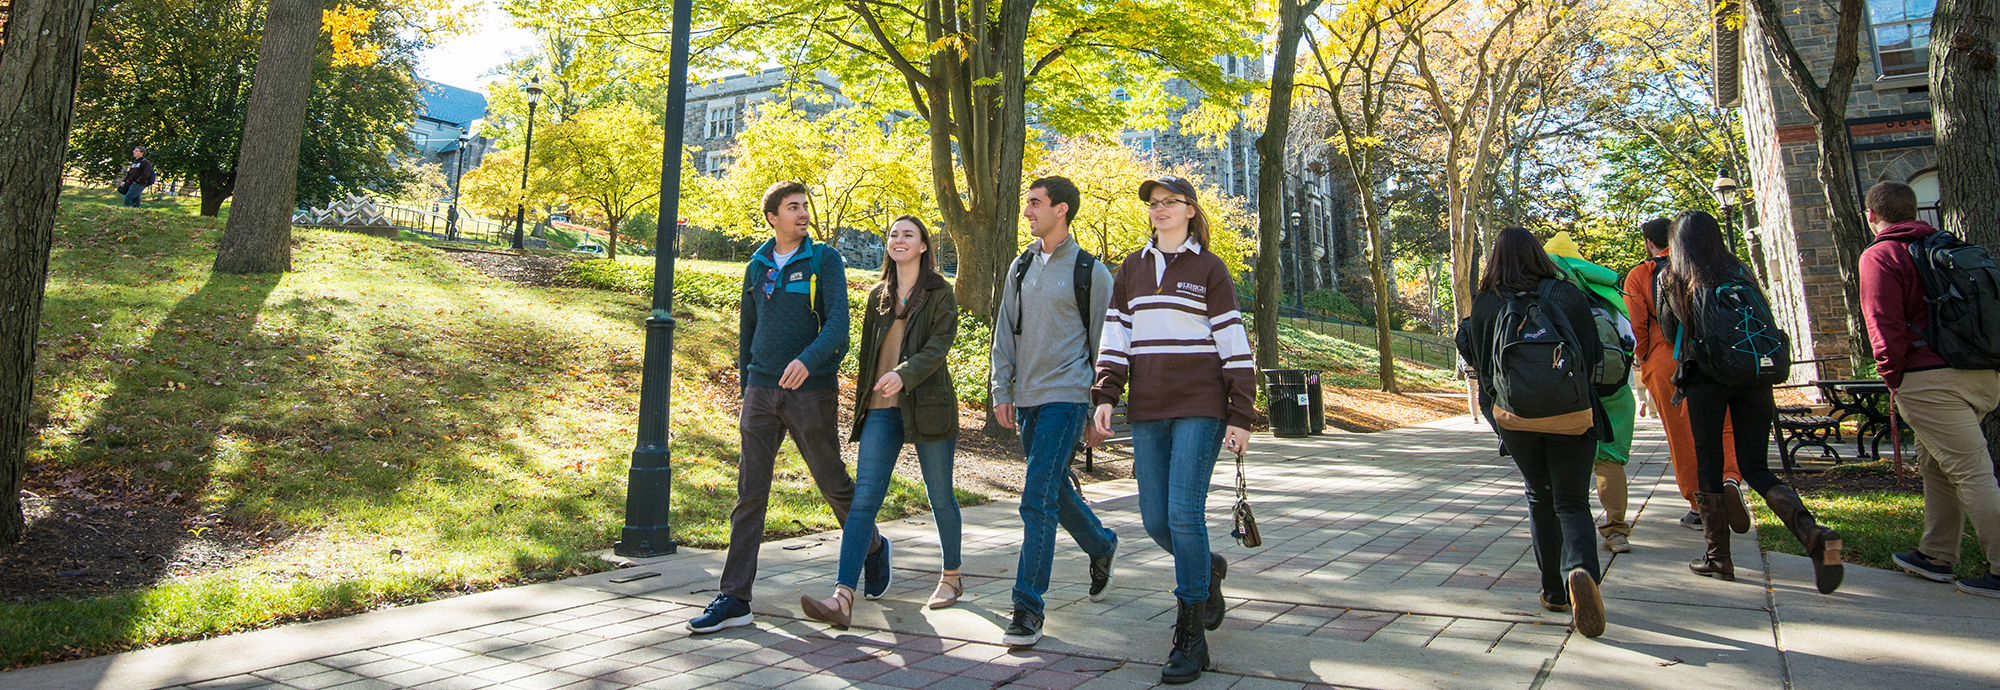 Students walking on Lehigh campus